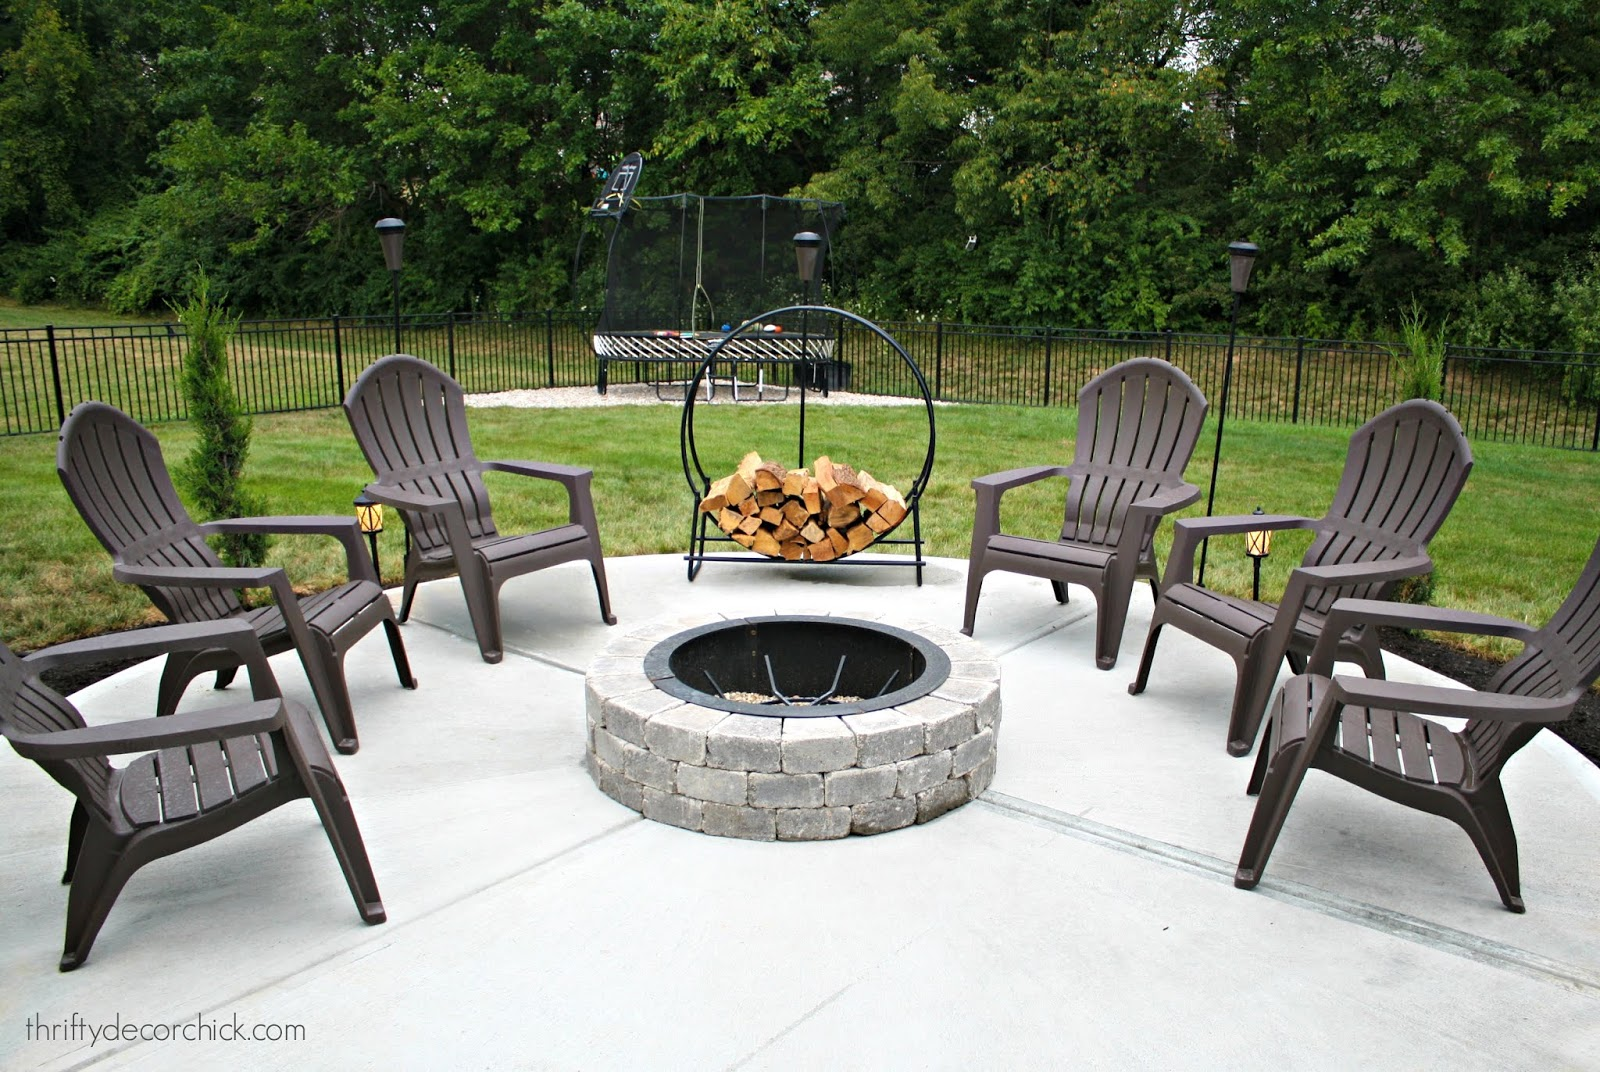 Round fire pit on patio with Adirondack chairs